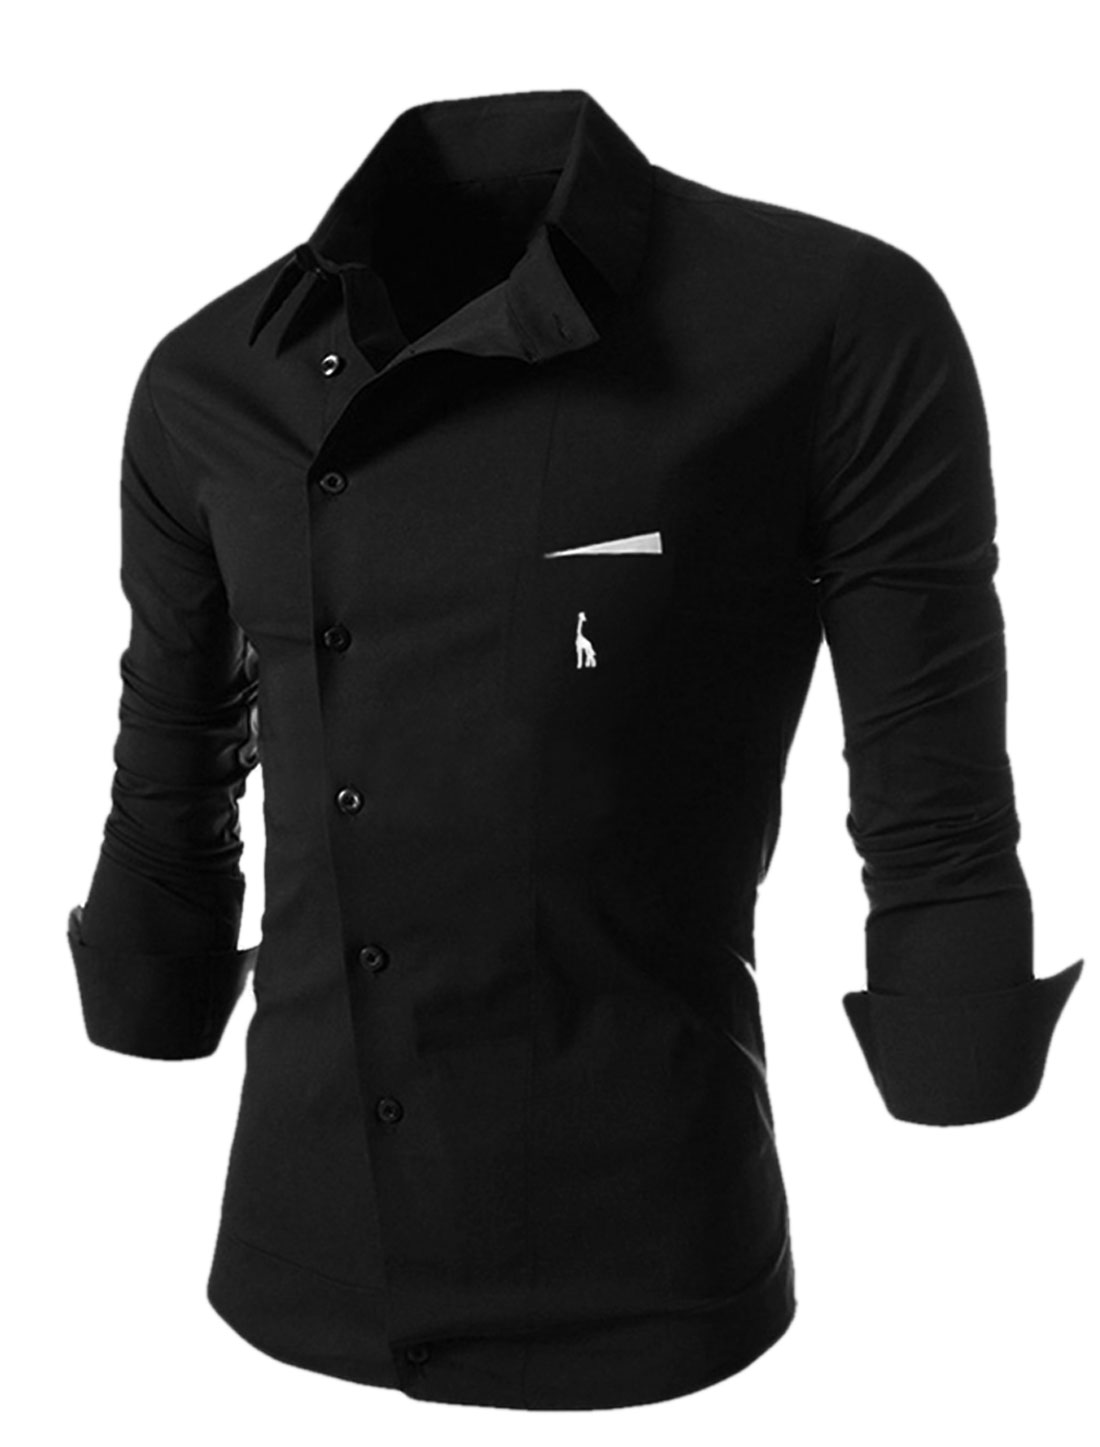 Man Black Point Collar Full Sleeves Inclined Single Breasted Fashion Shirt M